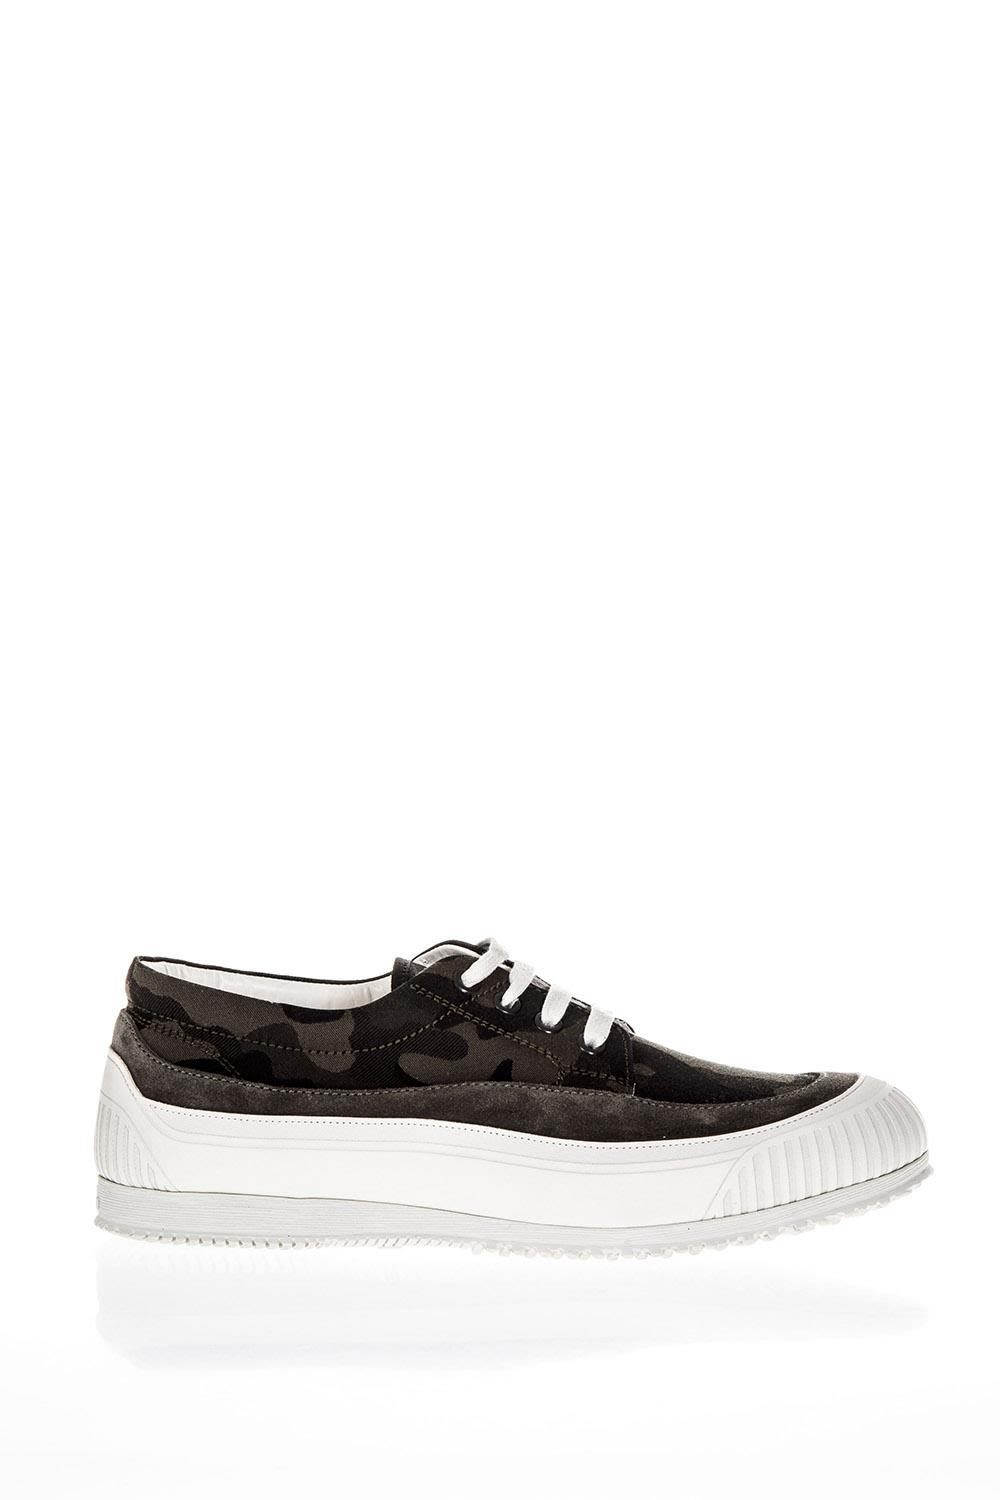 Canvas TRADITIONAL Sneakers Spring/summer Hogan IpptQu3